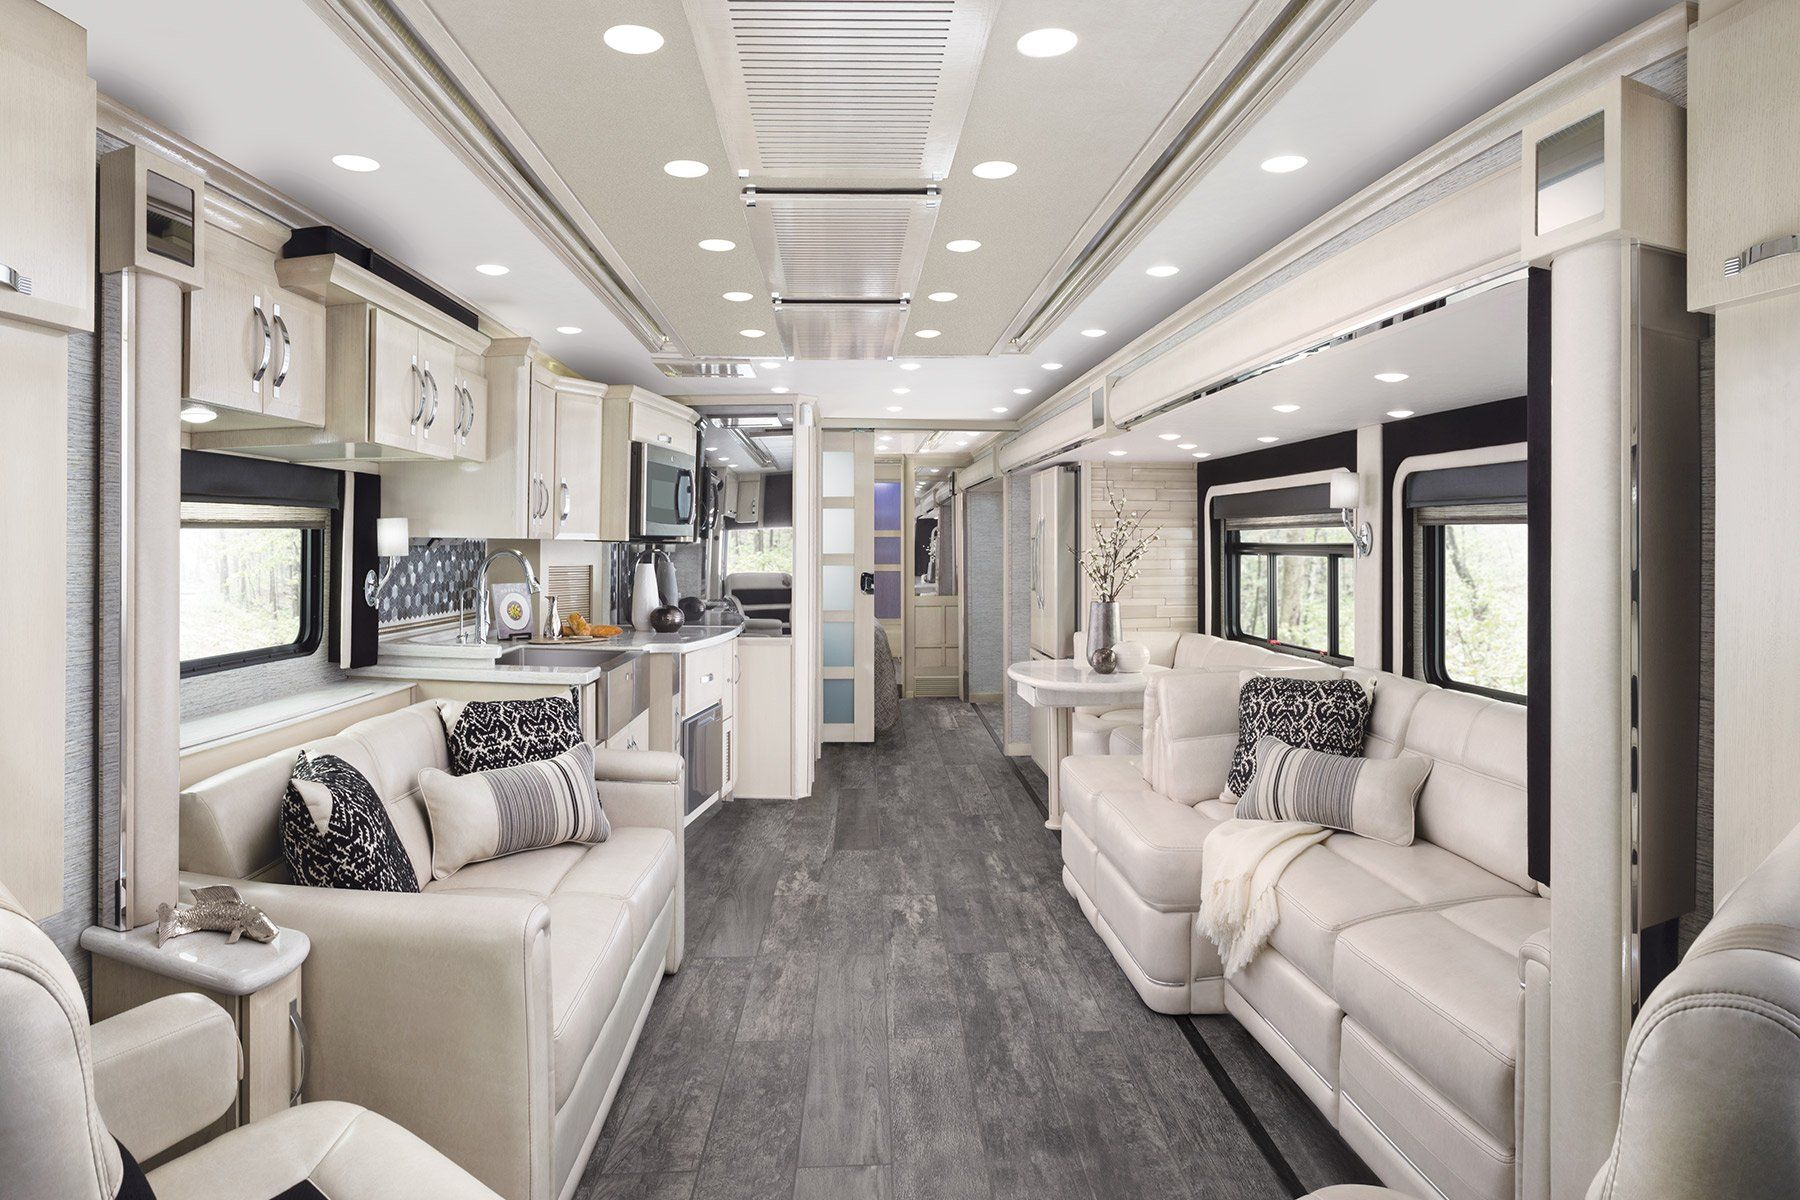 King Aire motor coach gallery Newmar Luxury rv, Luxury